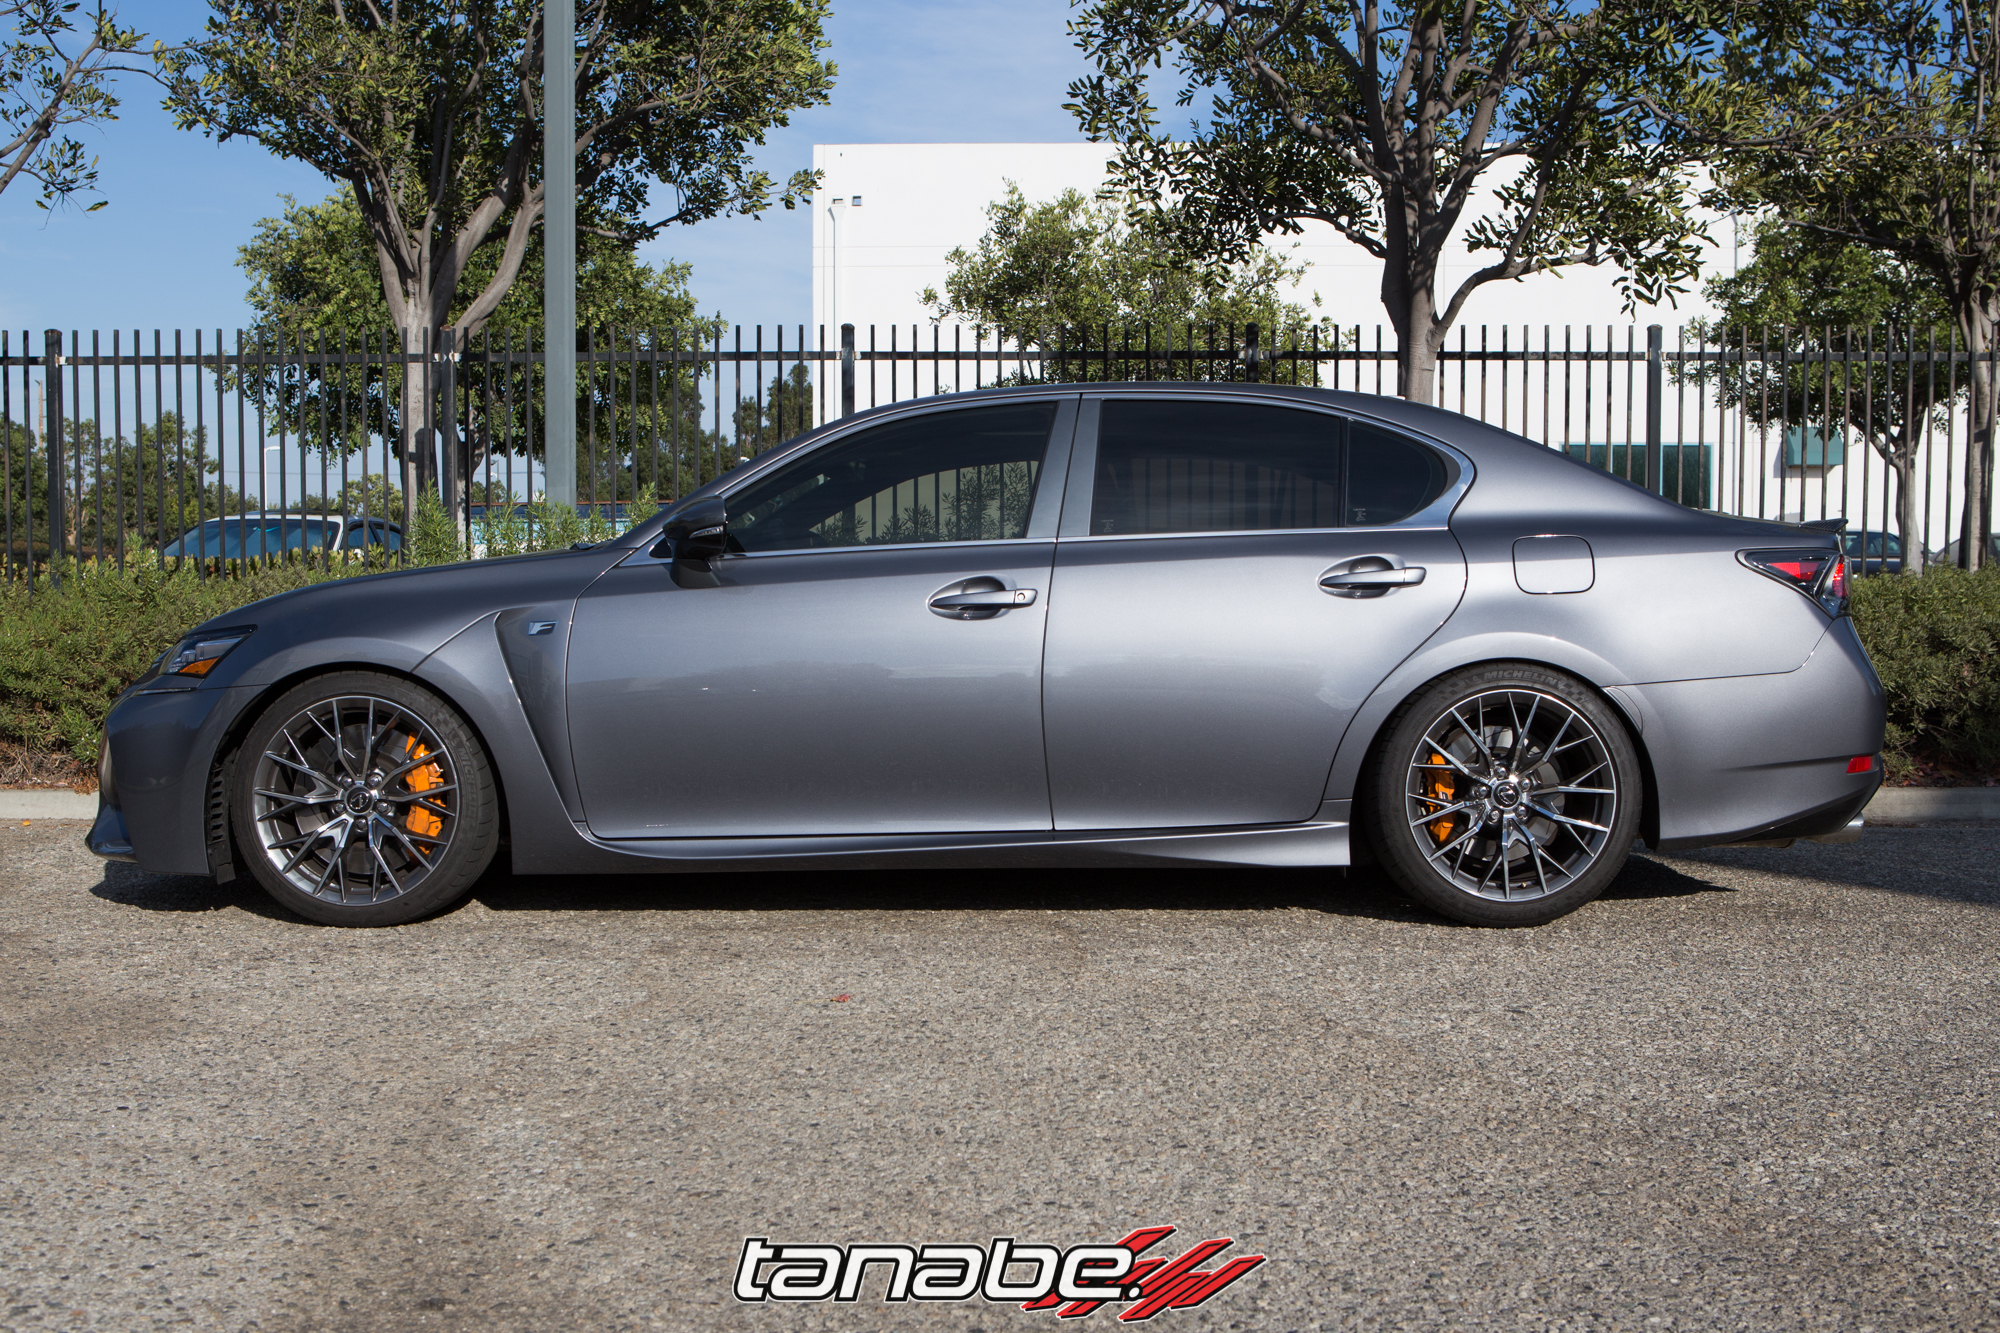 New Tanabe NF210 Springs for Lexus GS F More Japan Blog